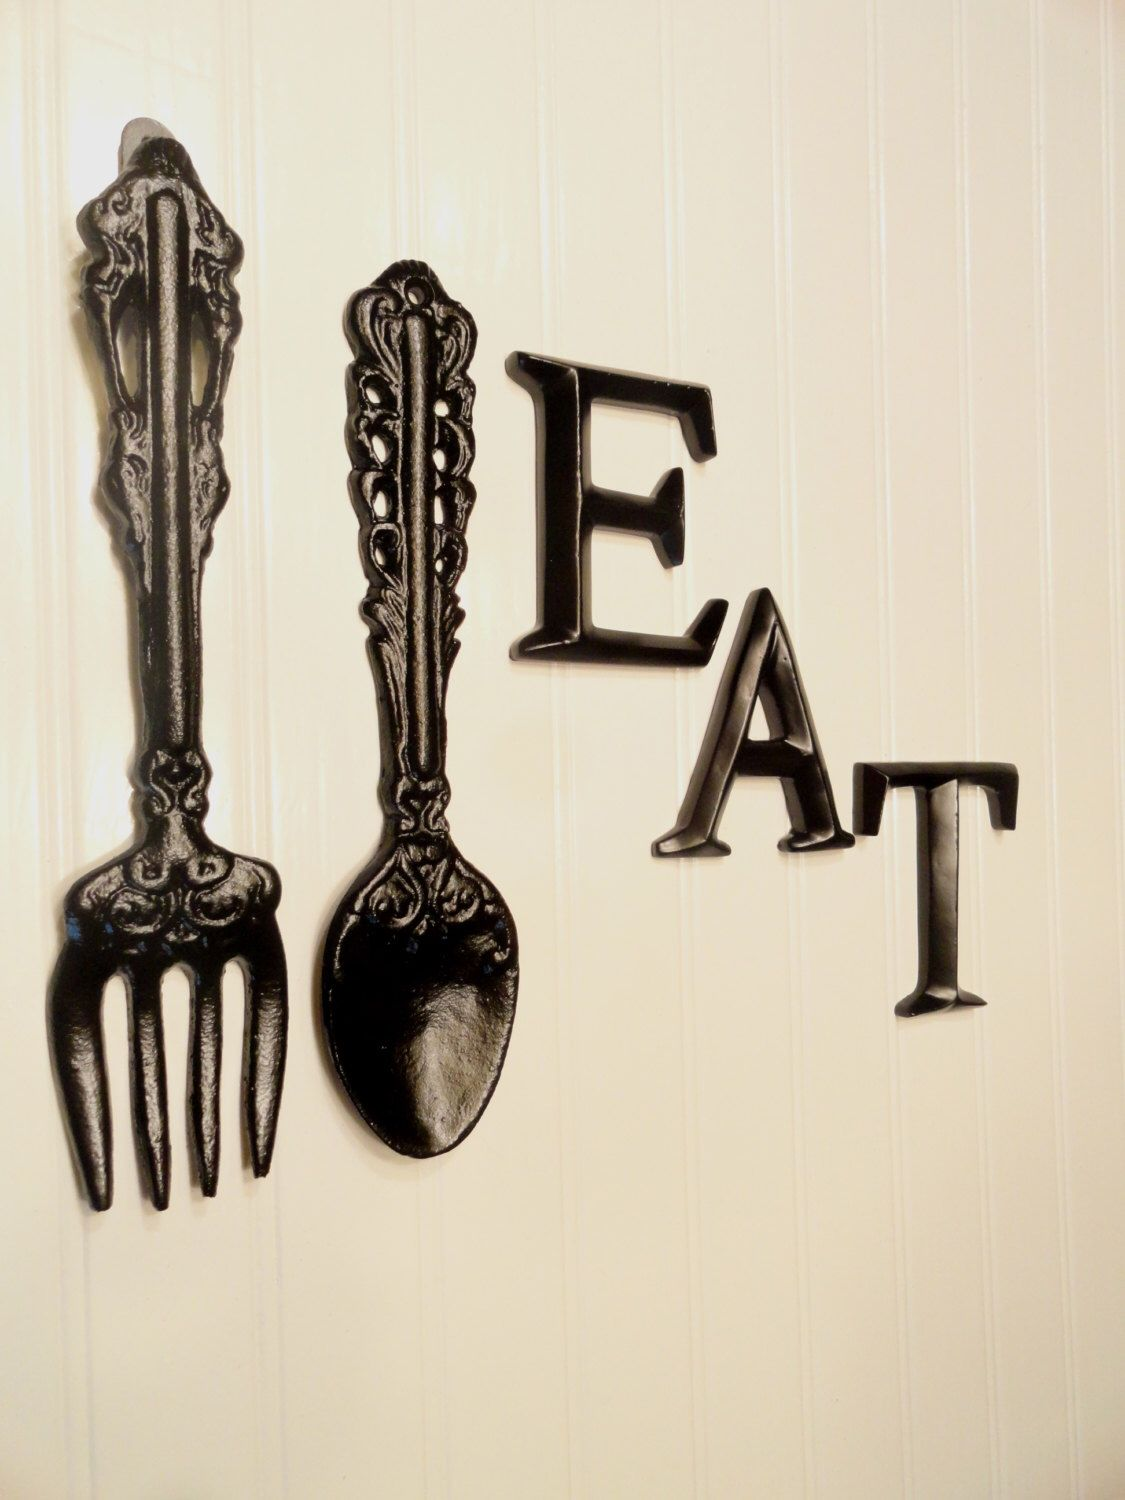 Black Kitchen Wall Decor, Large Fork Spoon Wall Decor, Eat